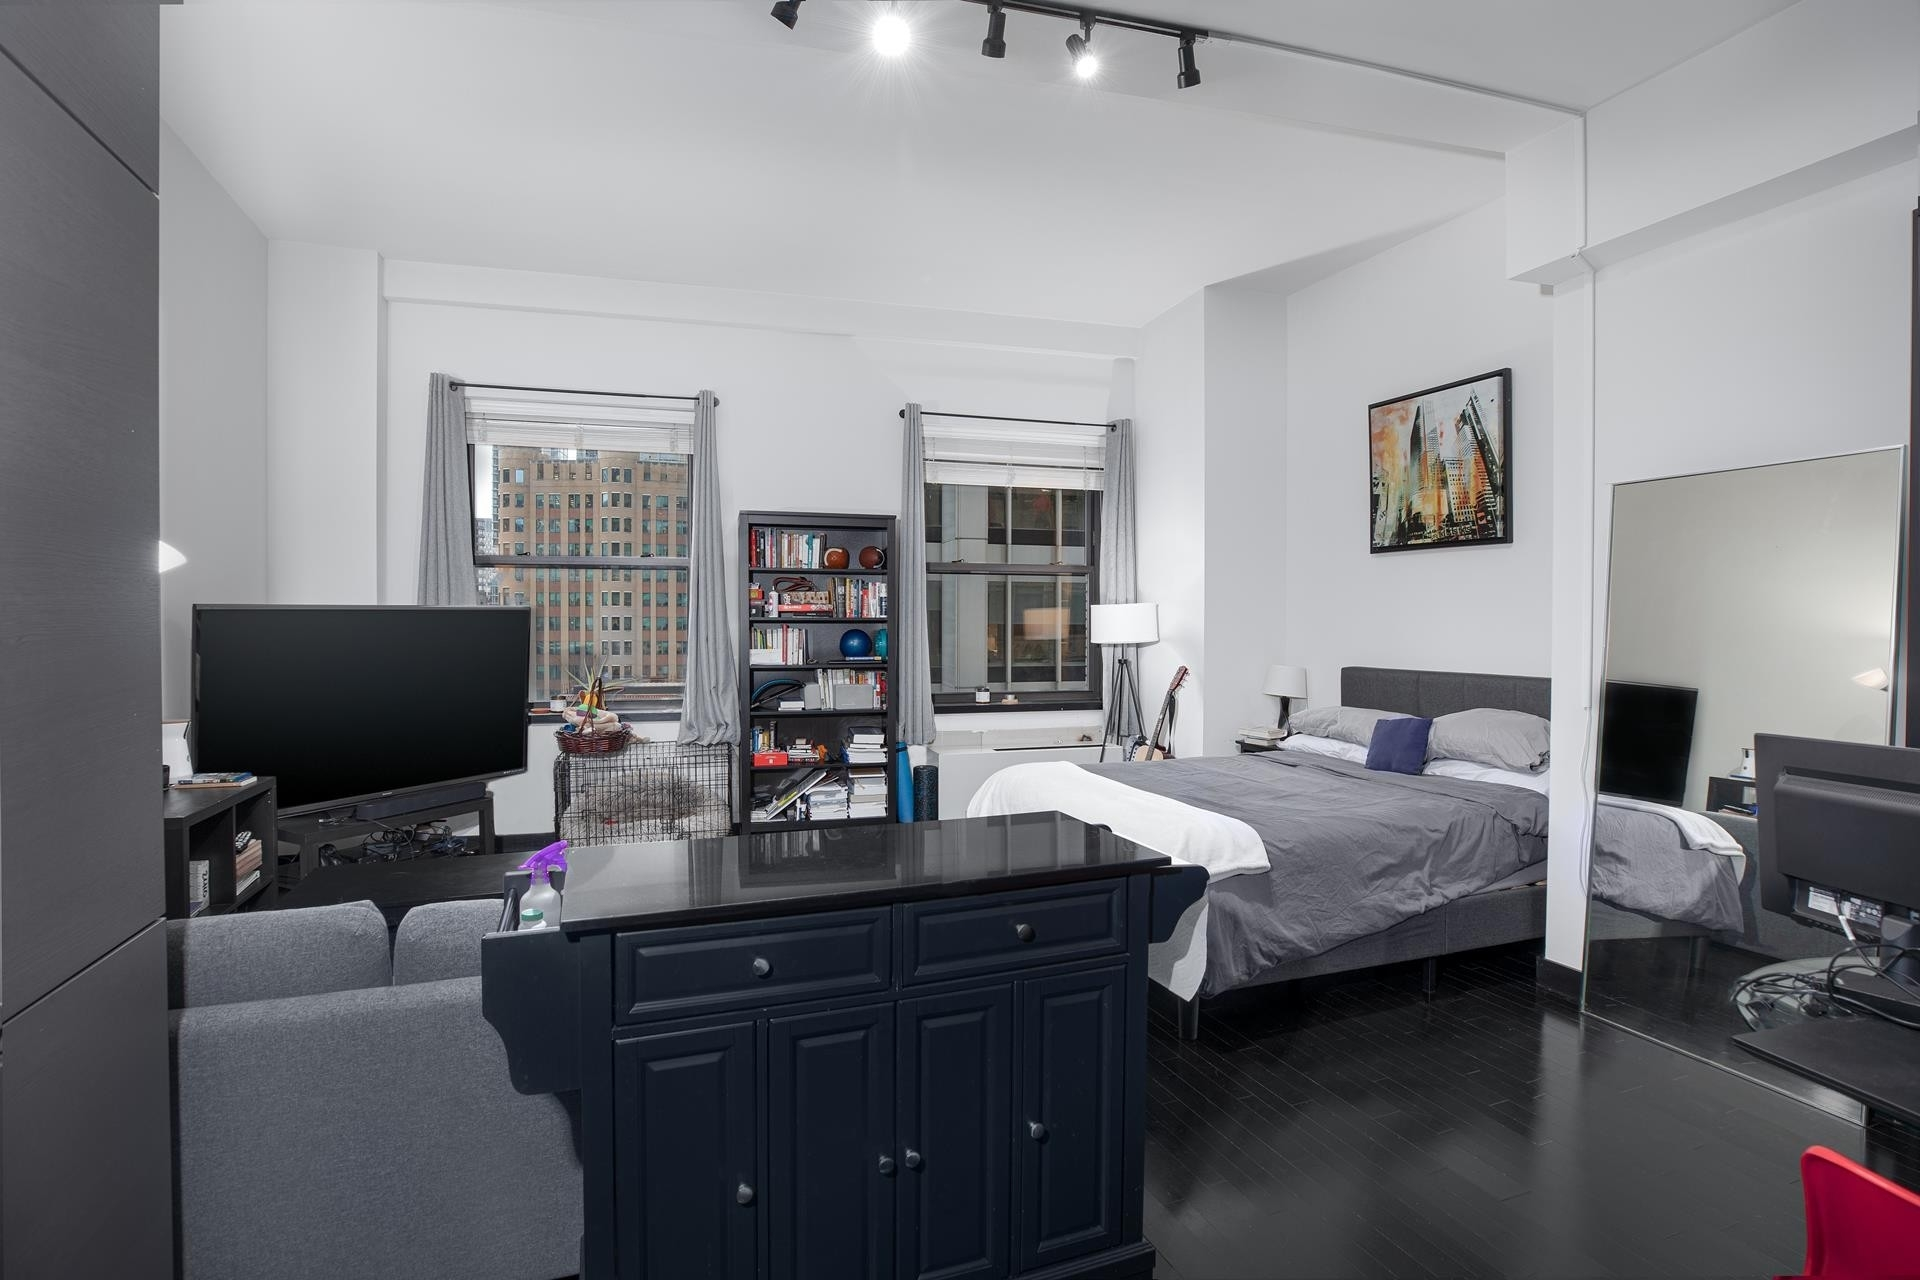 Condominium at 20 Pine - The Collection, 20 Pine St, 2410 Financial District, New York, NY 10005